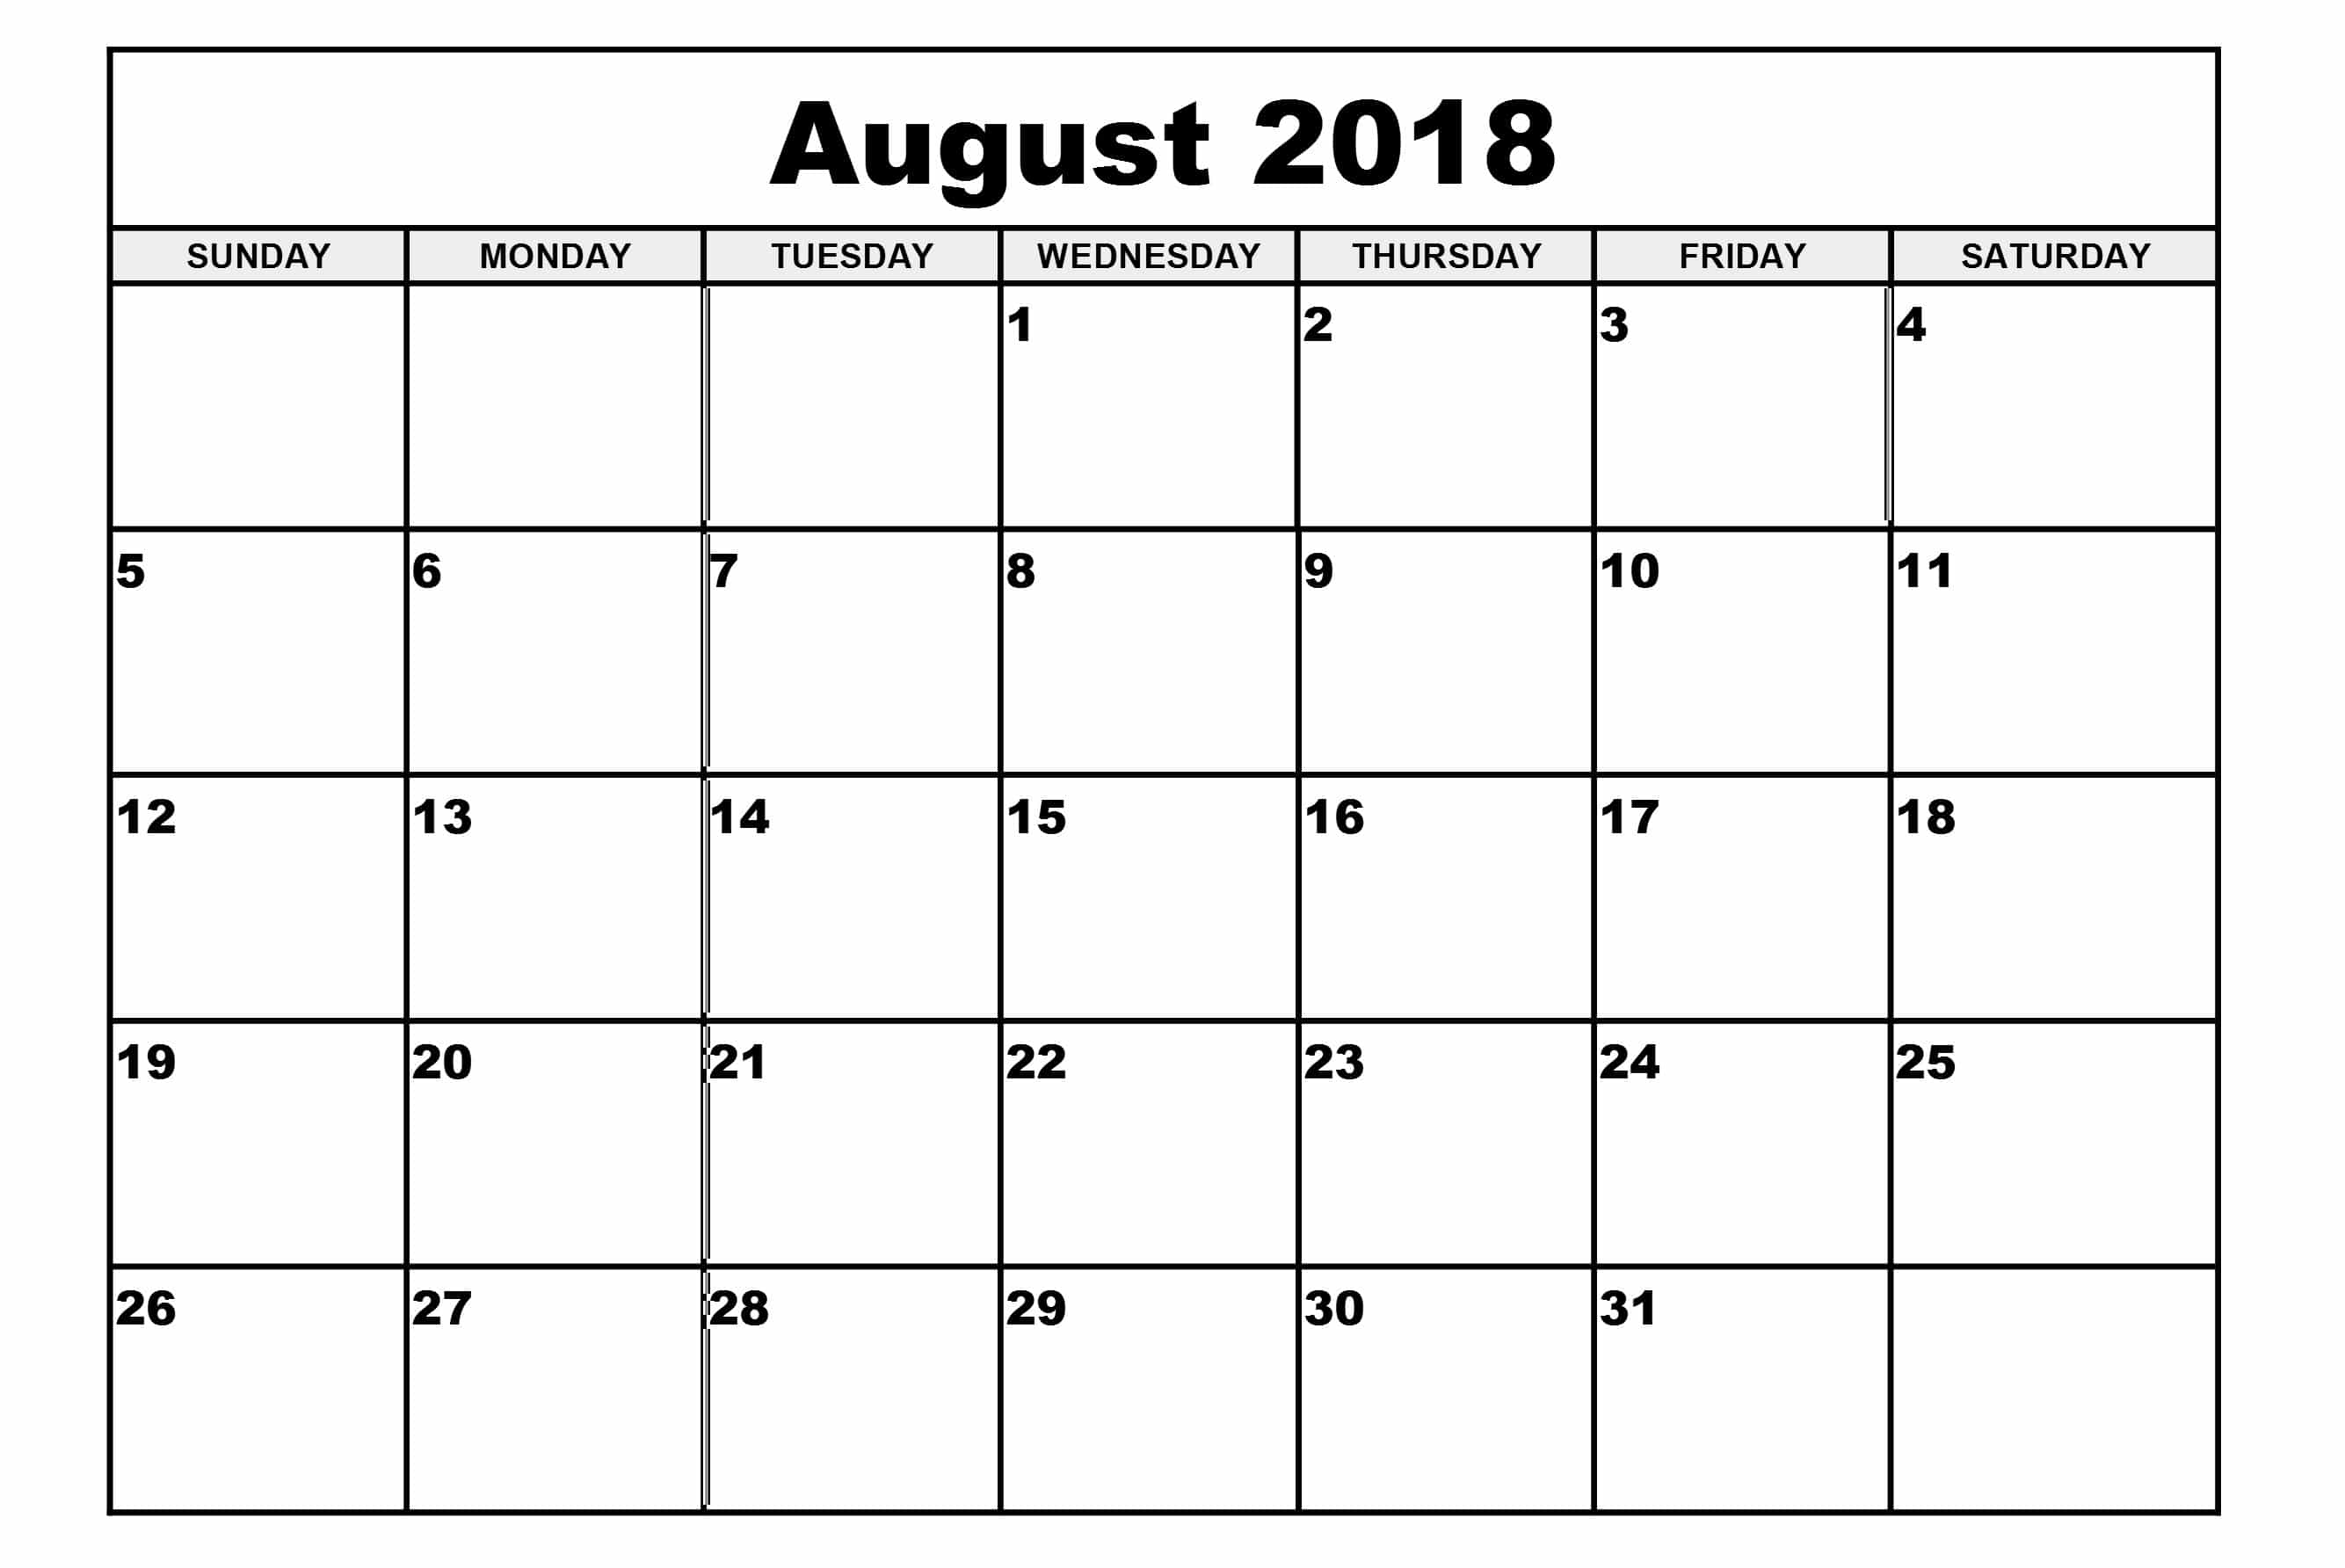 August Calendar 2018 Printable With Holidays - Free HD Images